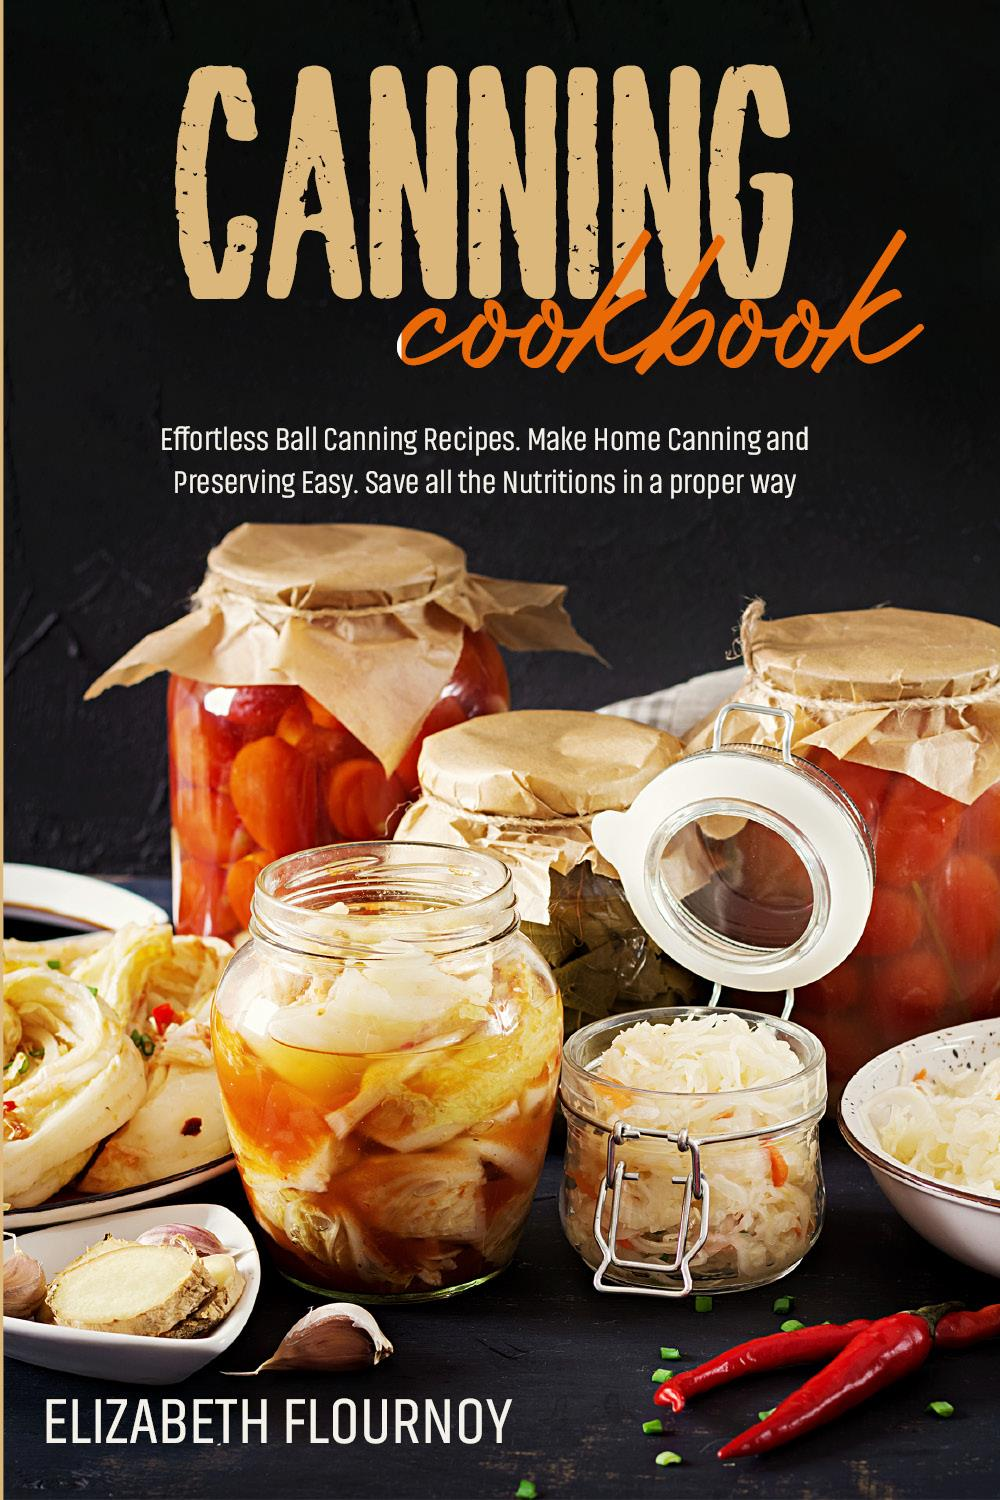 Canning cookbook. Effortless Ball Canning Recipes. Make Home Canning and Preserving Easy. Save all the Nutritions in a proper way